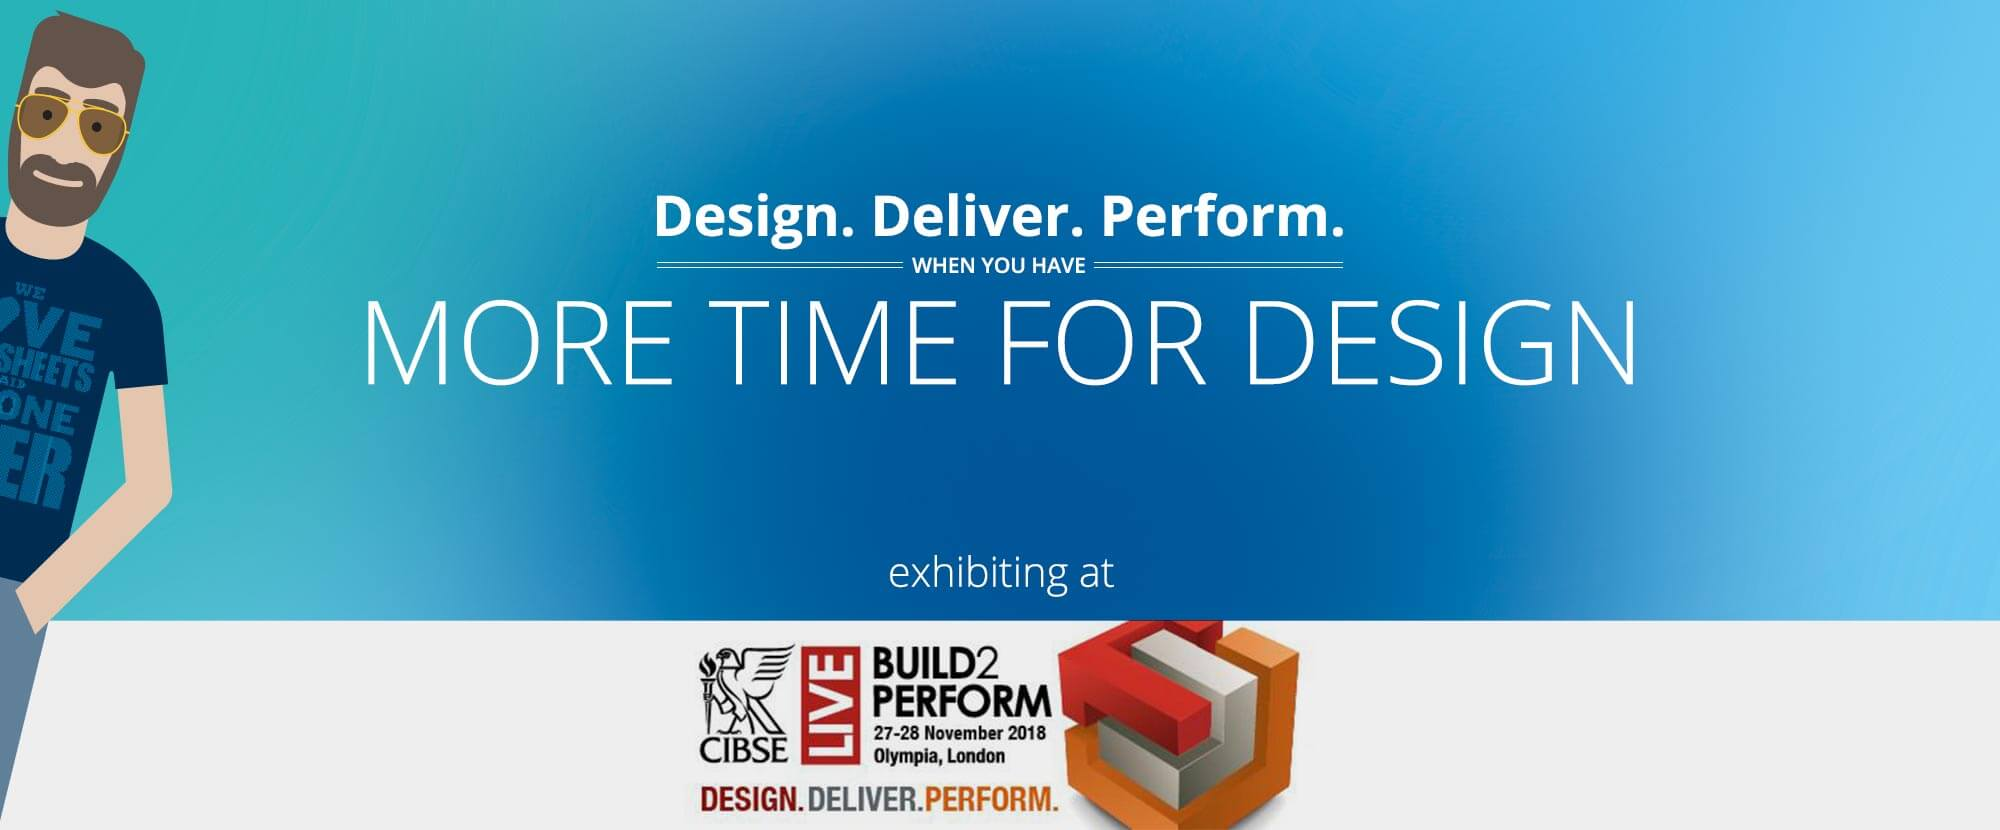 Total Synergy is exhibiting at CIBSE Build2Perform 2018.